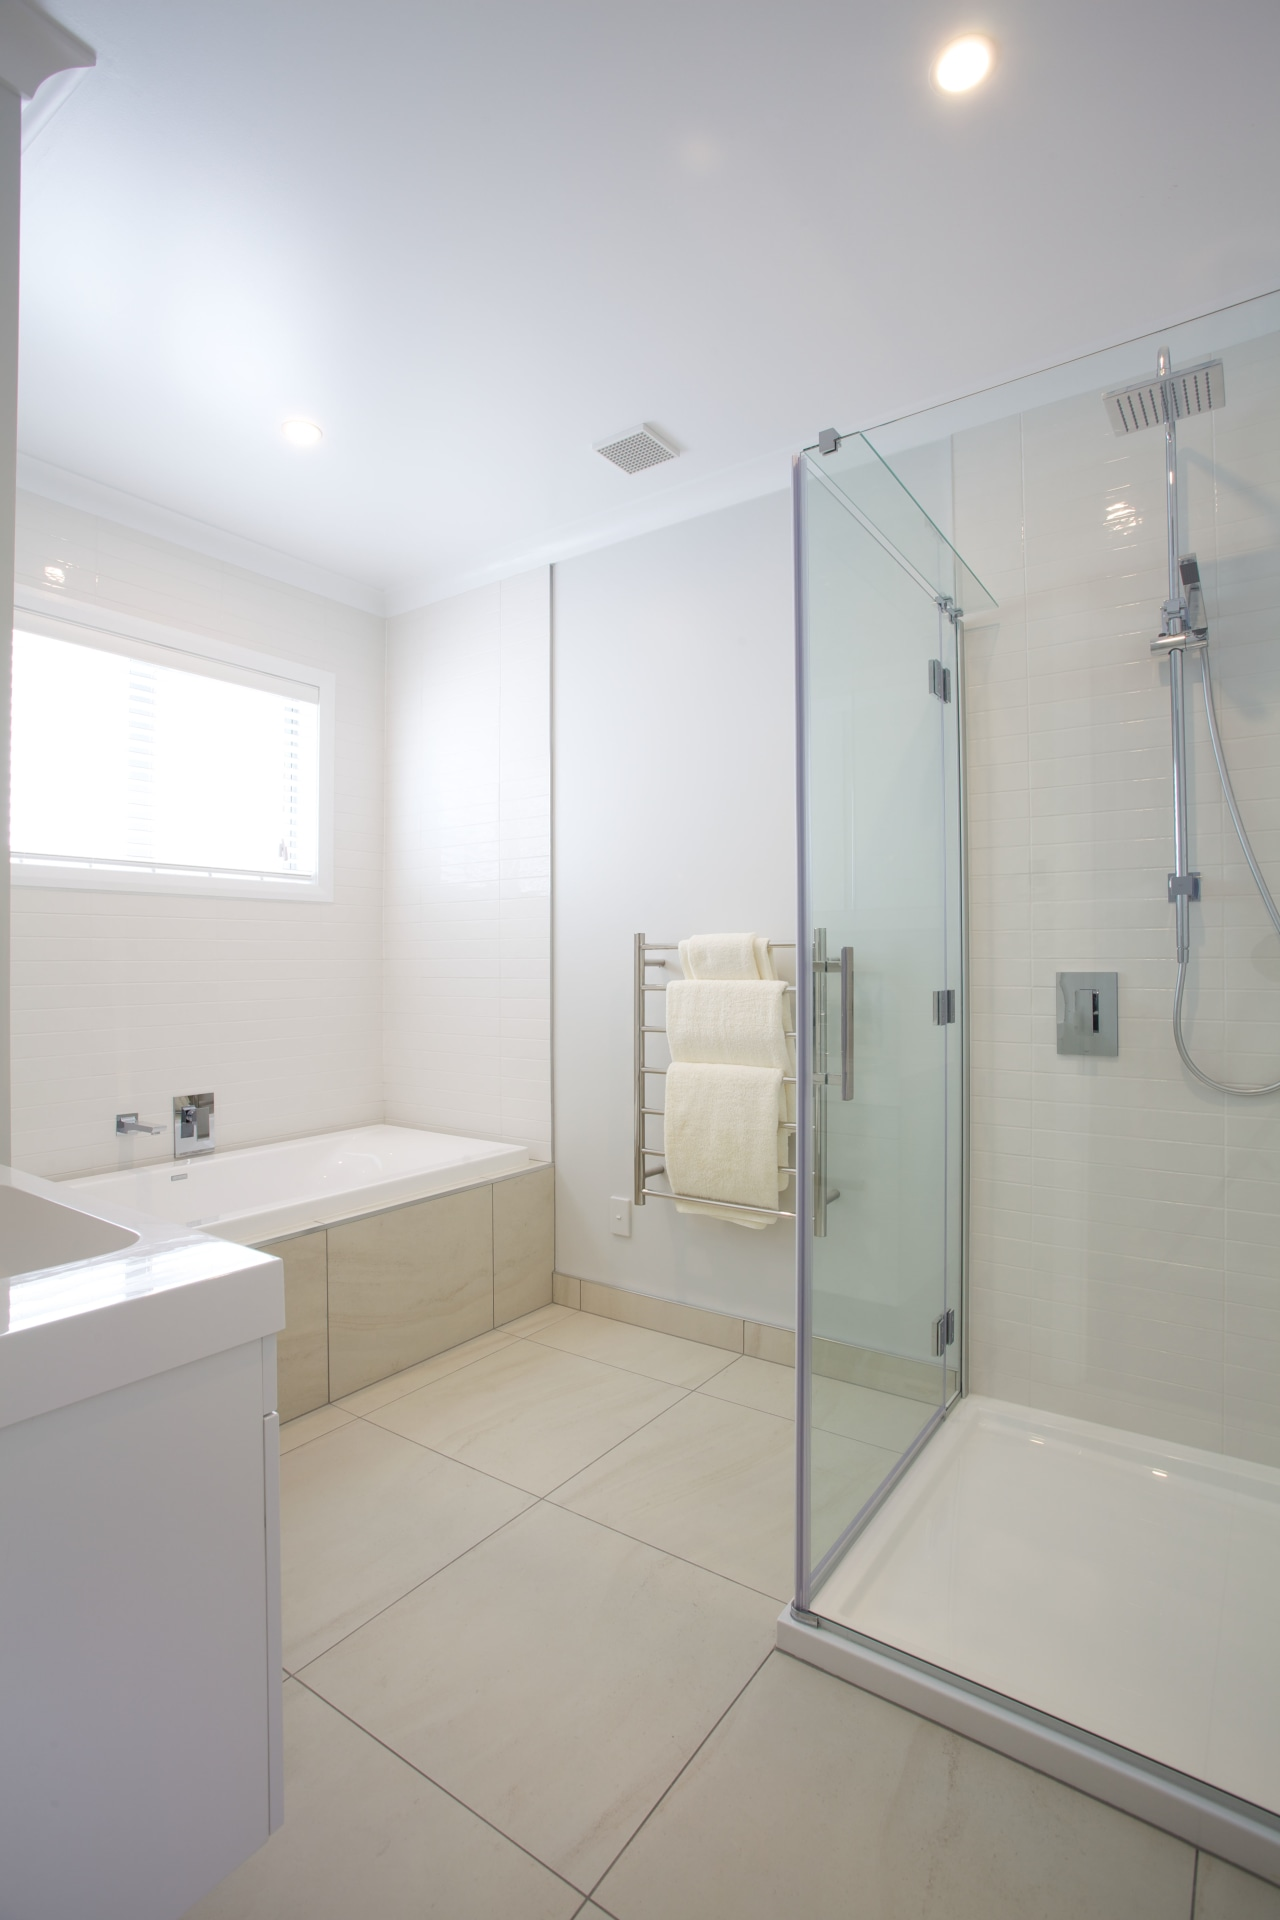 Sleek, contemporary bathrooms feature throughout this show home architecture, bathroom, ceiling, daylighting, floor, home, interior design, plumbing fixture, product design, property, real estate, room, tile, gray, white